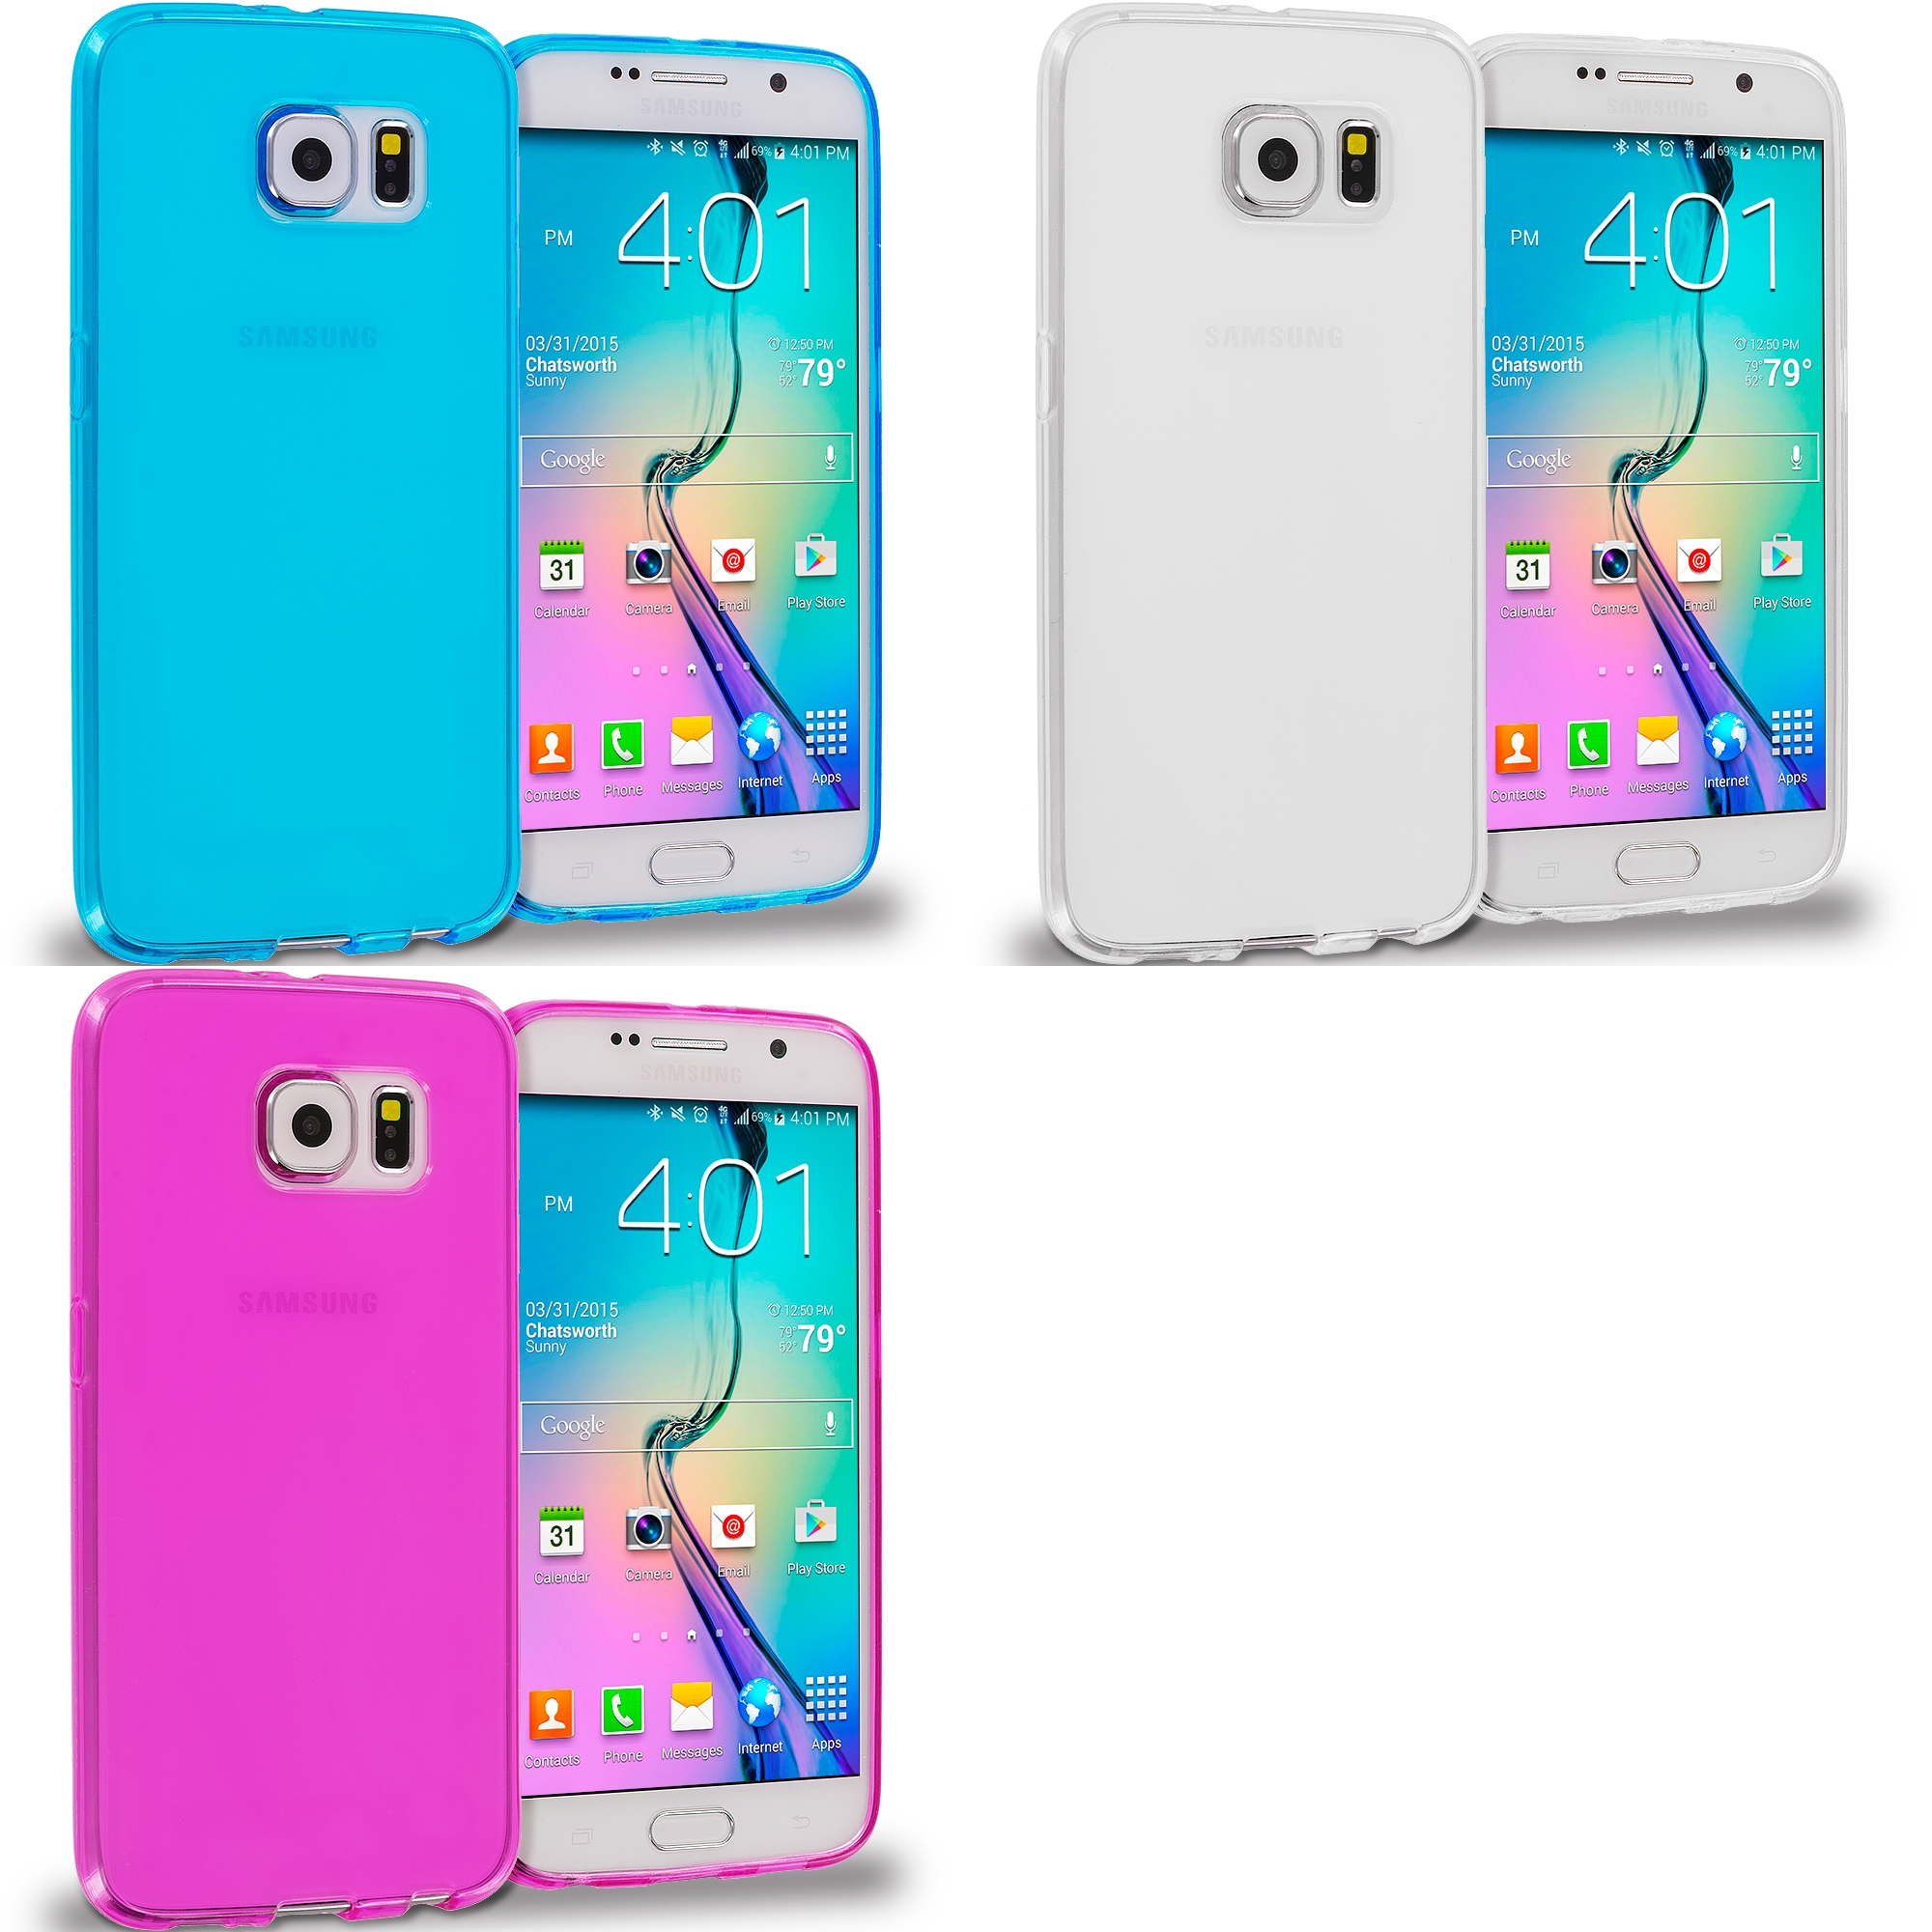 Samsung Galaxy S6 3 in 1 Combo Bundle Pack - Plain TPU Rubber Skin Case Cover